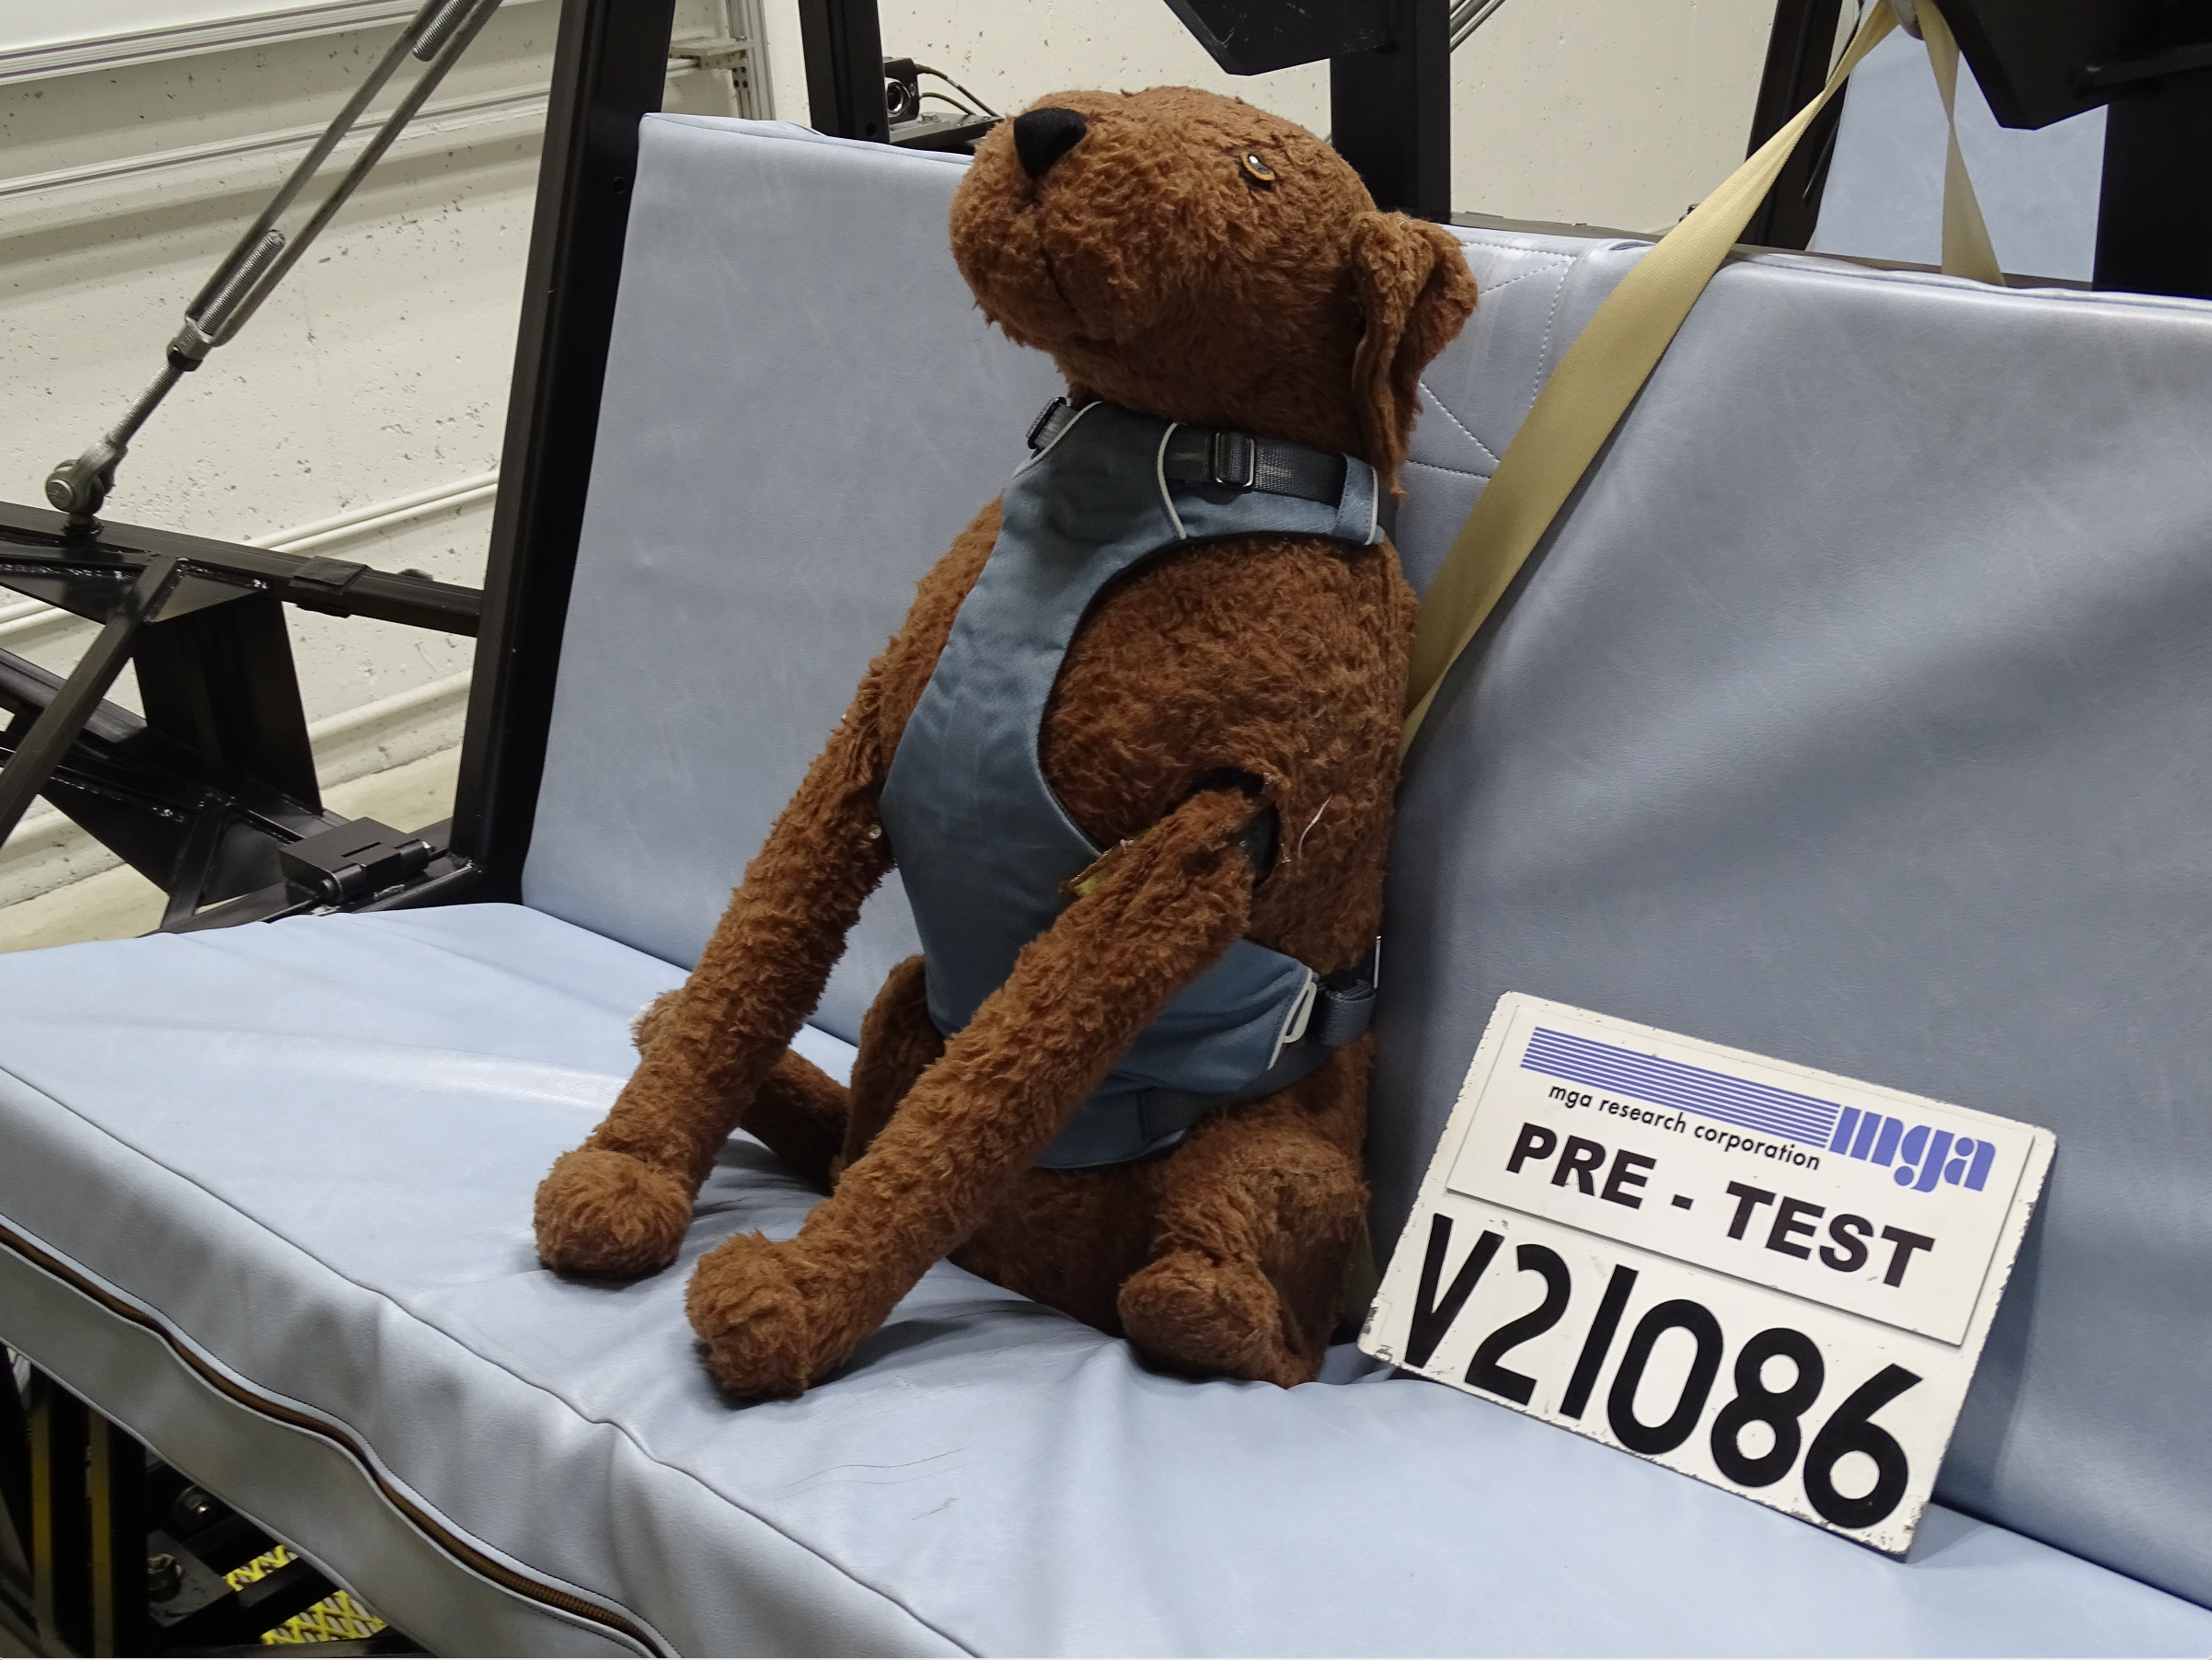 Dog mannequin wearing harness on car bench in a testing facility